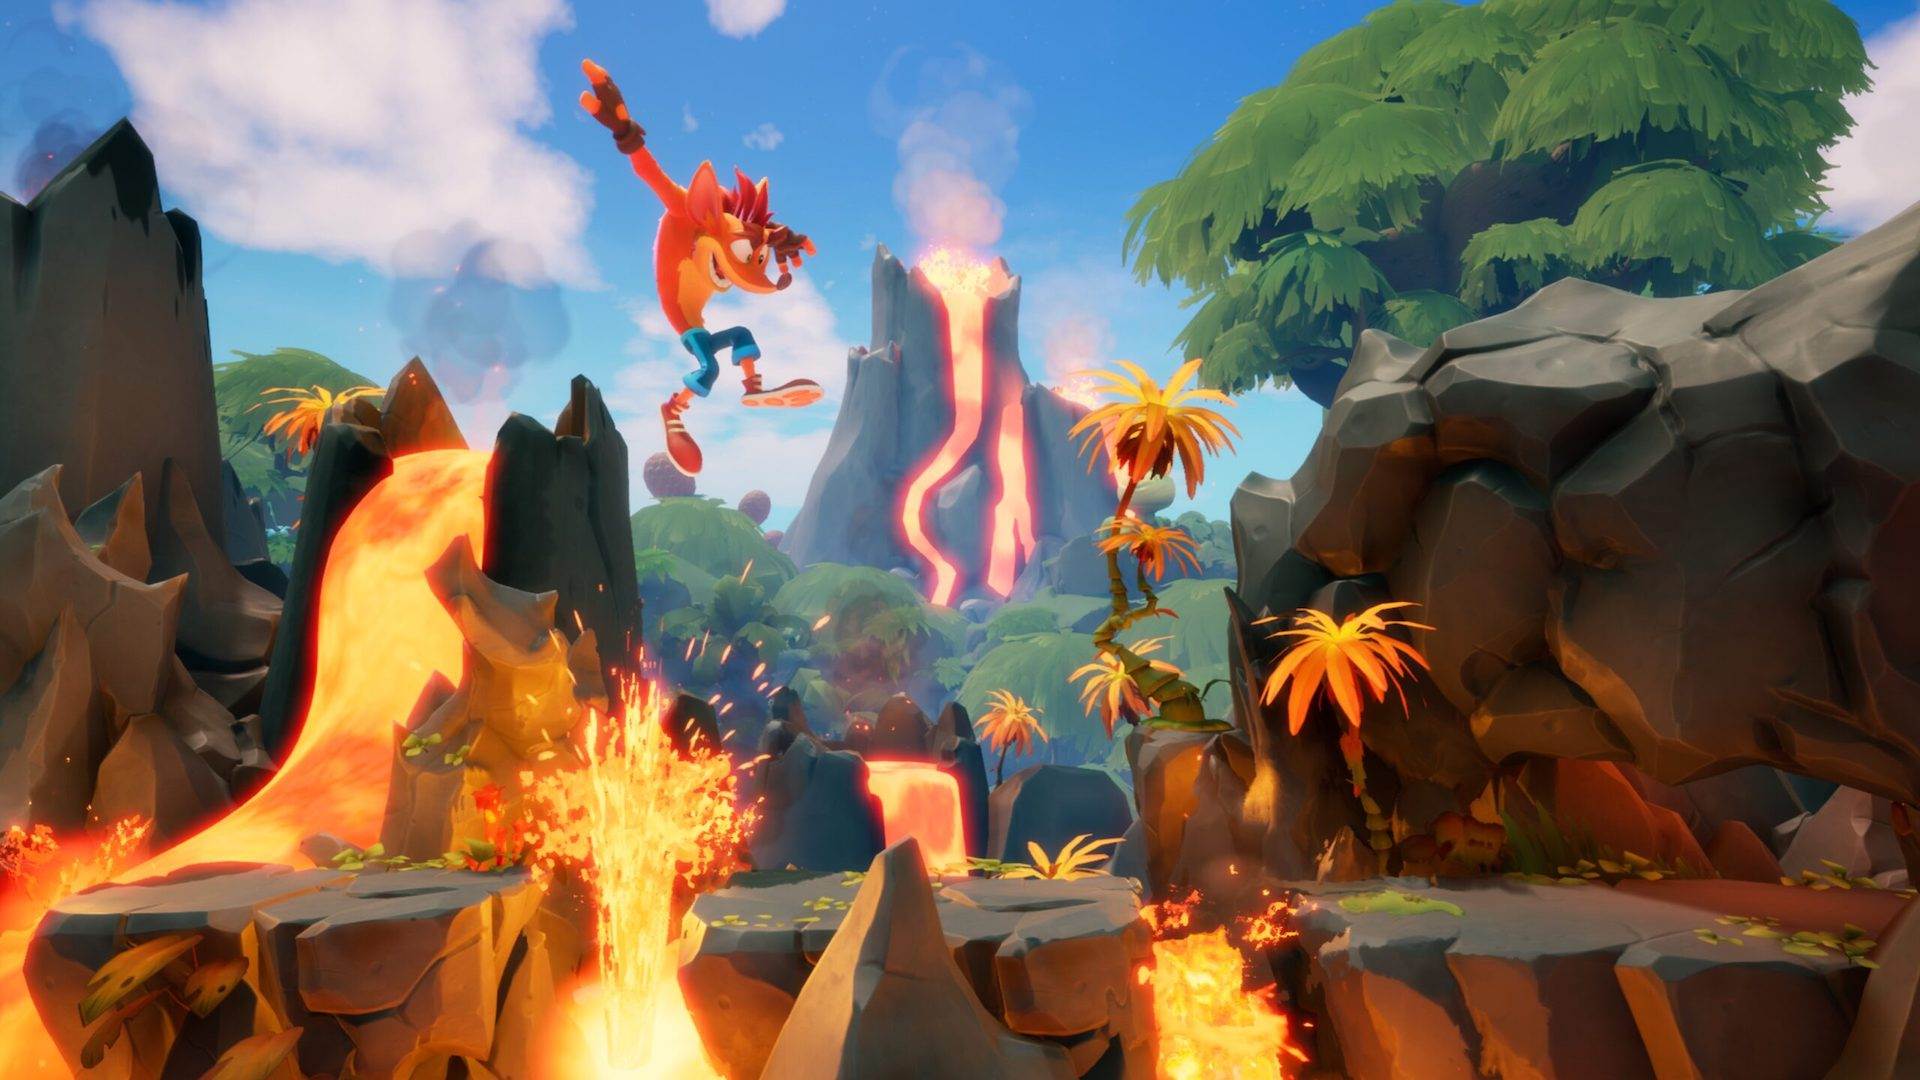 Crash Bandicoot 4: It's About Time – Snow Way Out, Dino Dash Levels Revealed in New Gameplay